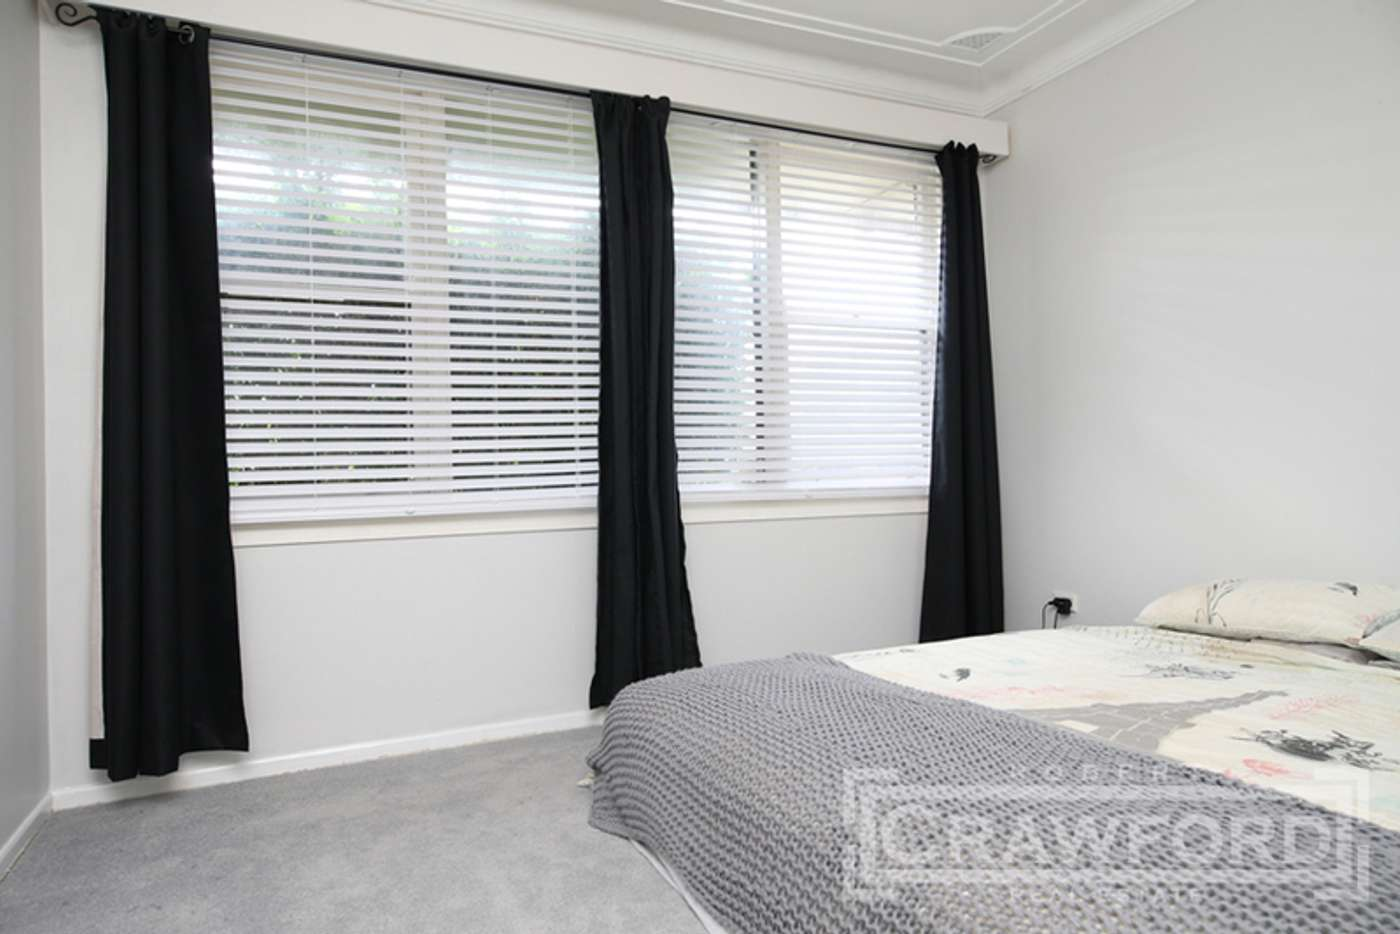 Fifth view of Homely house listing, 25 Coral Sea Avenue, Shortland NSW 2307